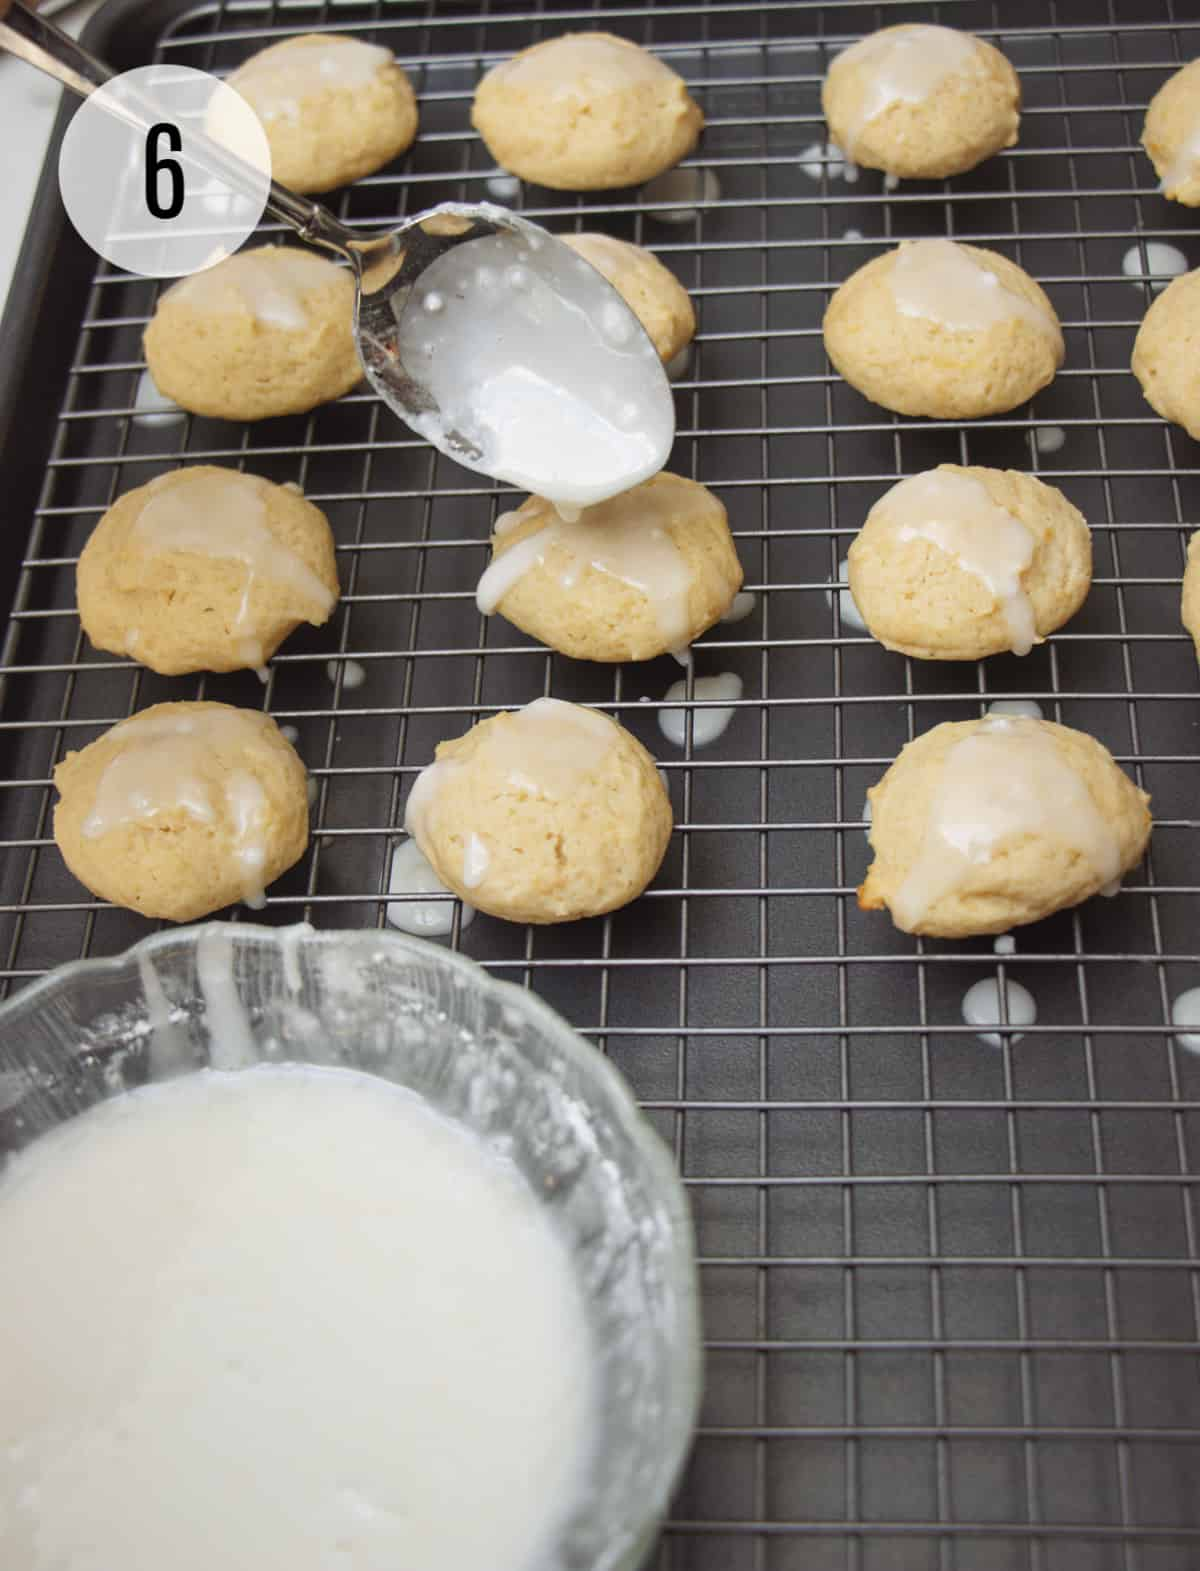 Silver spoon drizzling white glaze onto yellow cookies on a cooling rack on a baking tray with bowl of glaze in lower left.